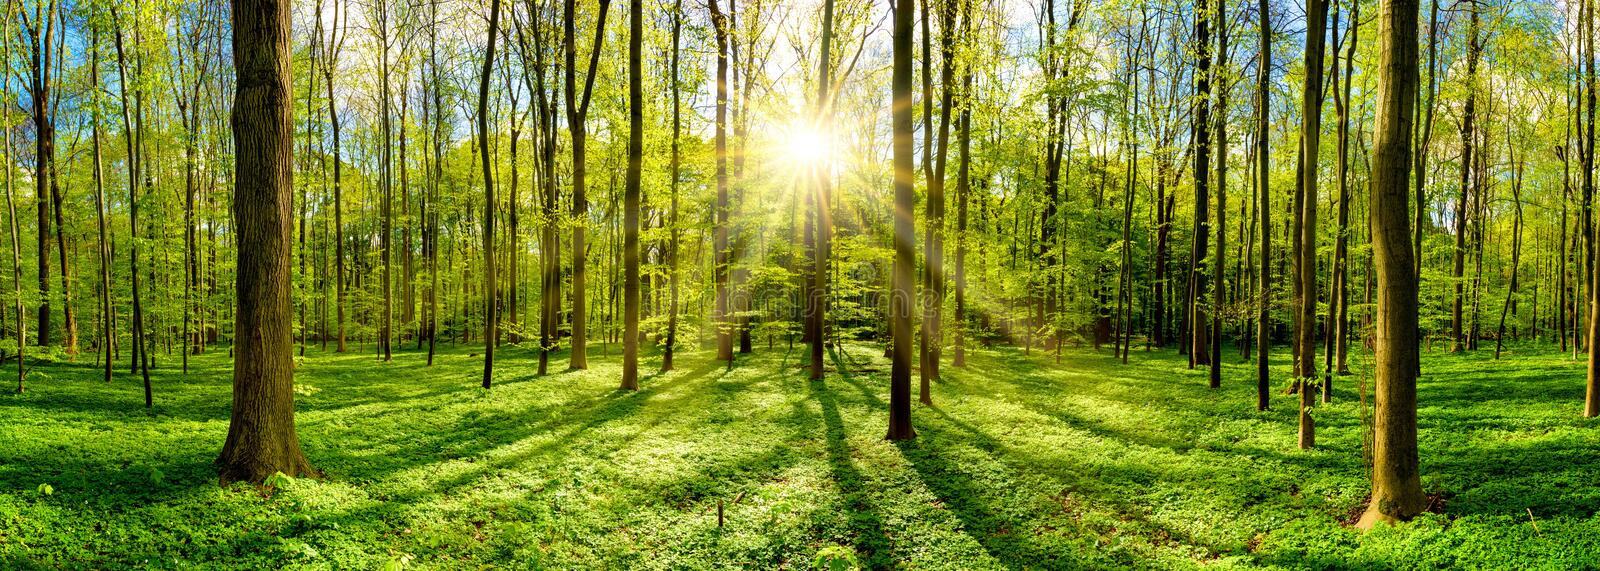 Beautiful forest with bright sun. Beautiful forest in spring with bright sun shining through the trees royalty free stock photography